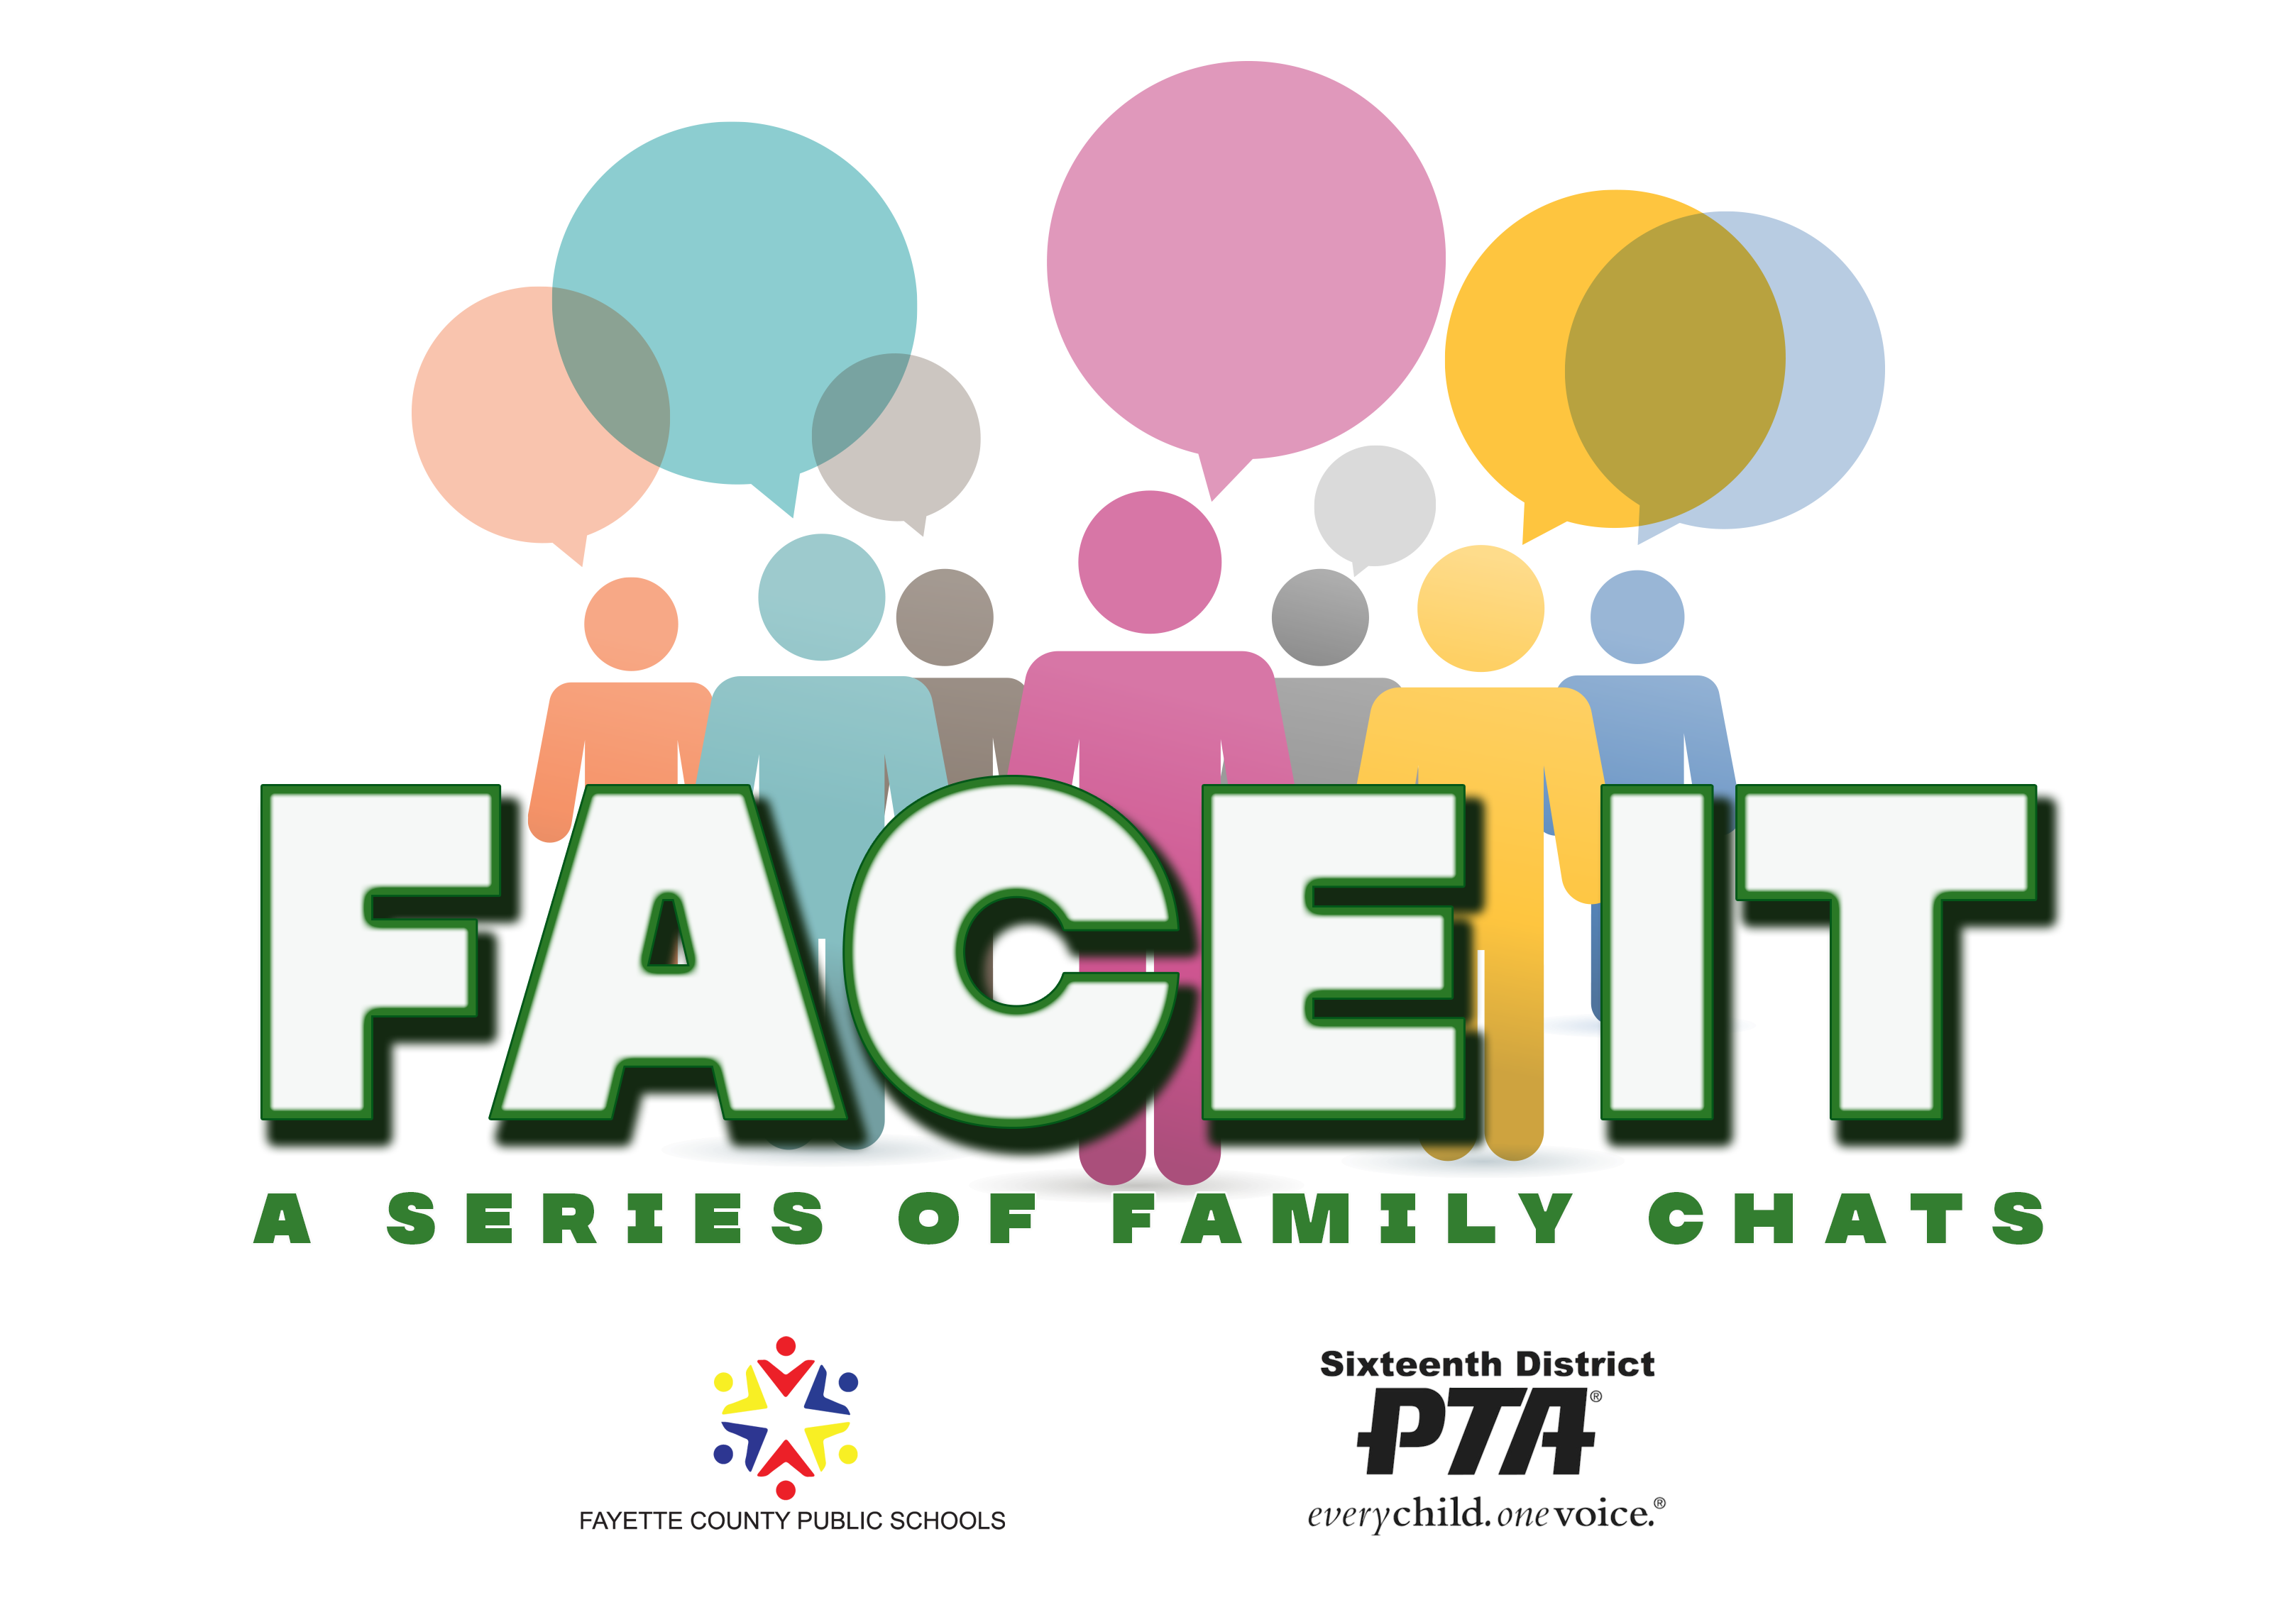 Face It logo